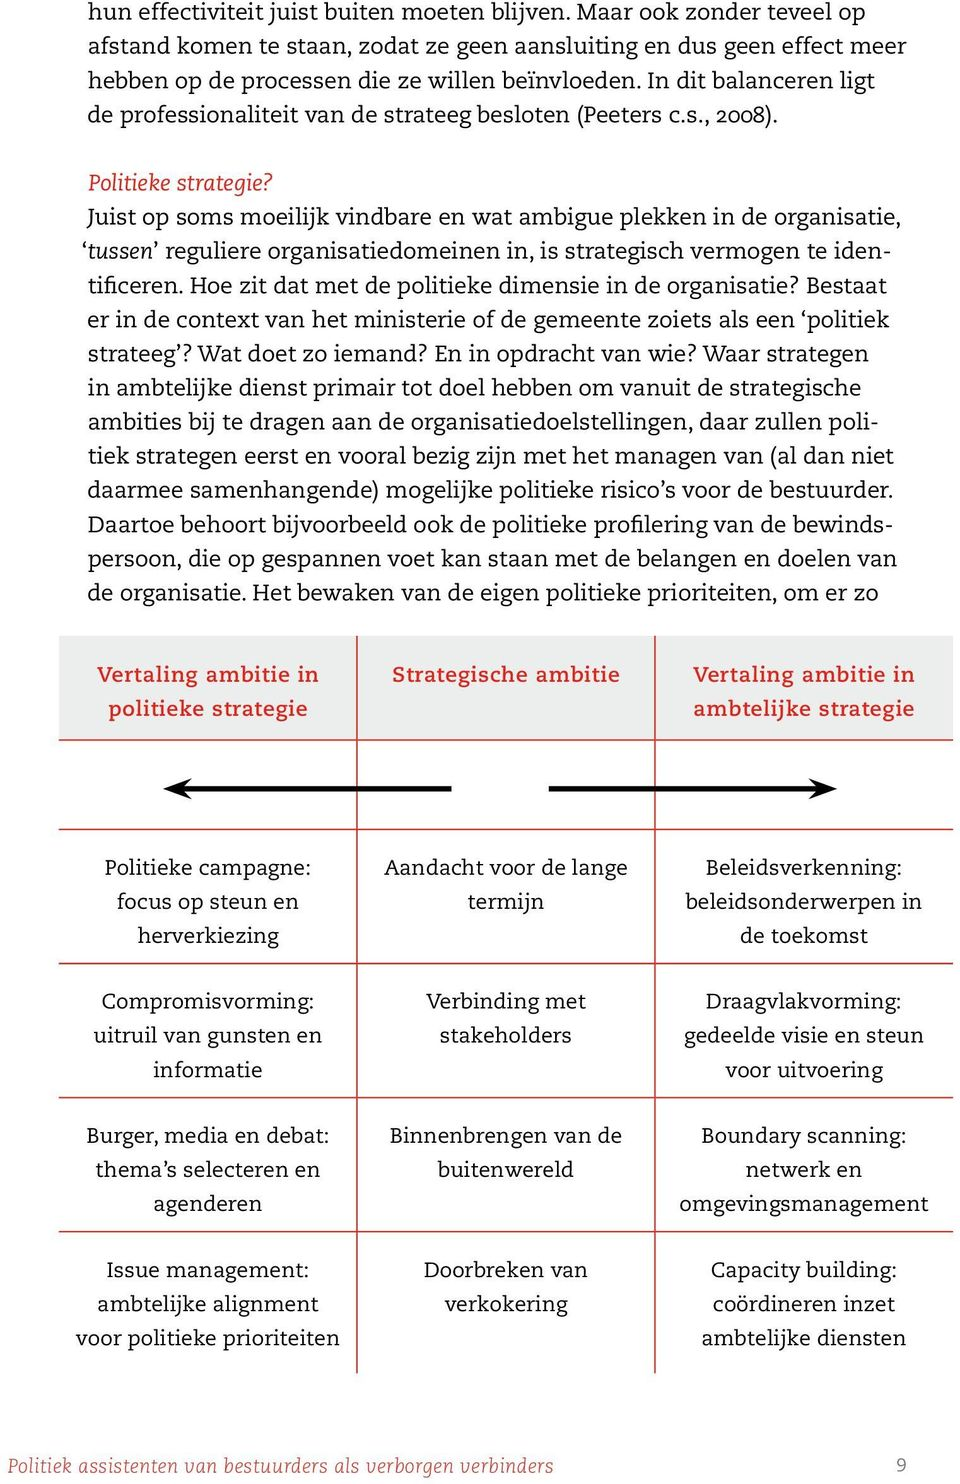 Juist op soms moeilijk vindbare en wat ambigue plekken in de organisatie, tussen reguliere organisatiedomeinen in, is strategisch vermogen te identificeren.